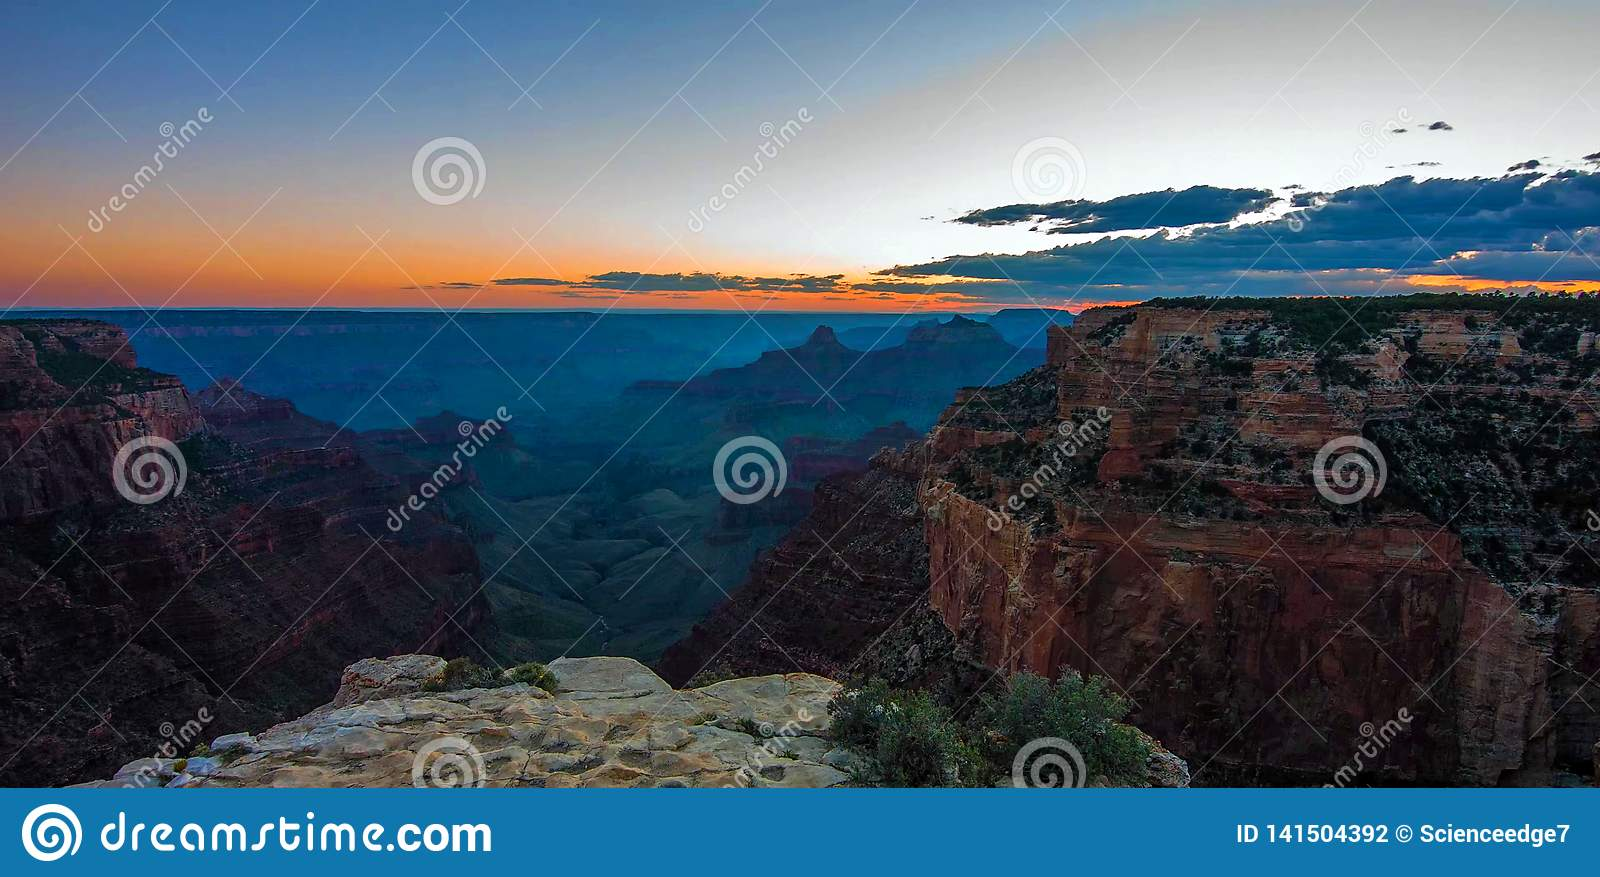 Grand Canyon, North Rim, Arizona, United States of America